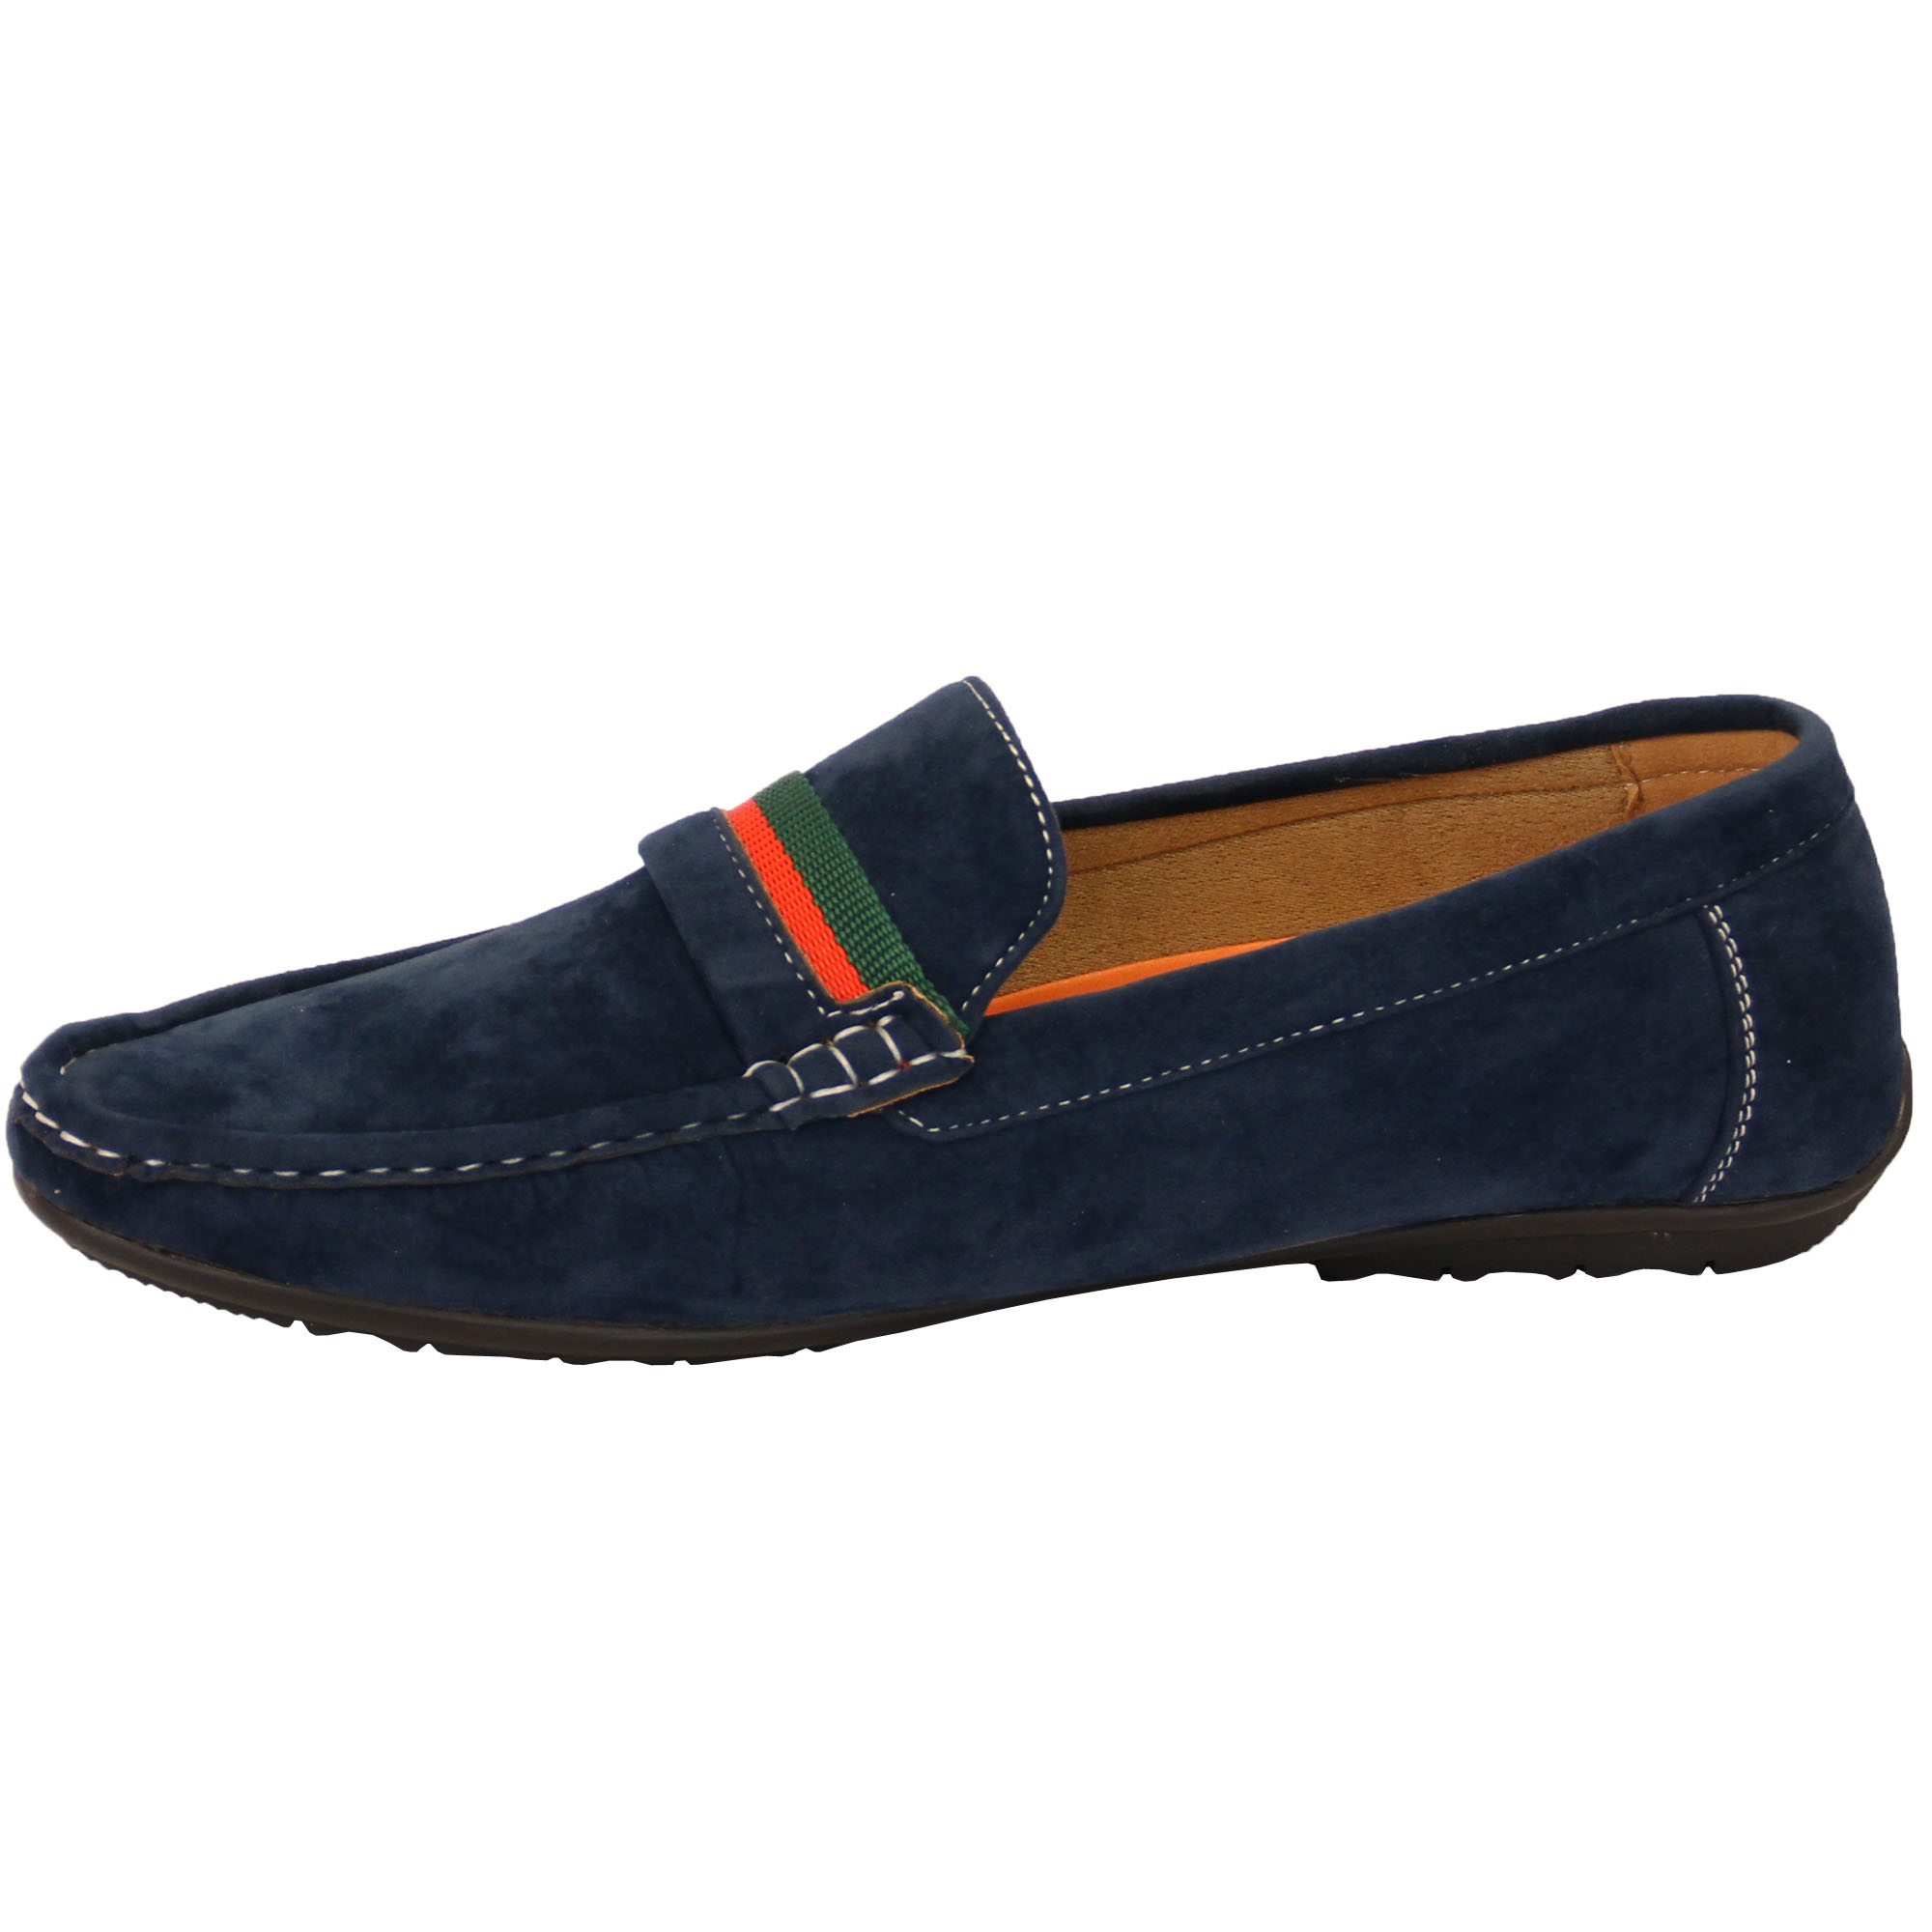 Mens-Moccasins-Suede-Look-Driving-Loafers-Slip-On-Boat-Shoes-Ribbon-Tassle-New thumbnail 13